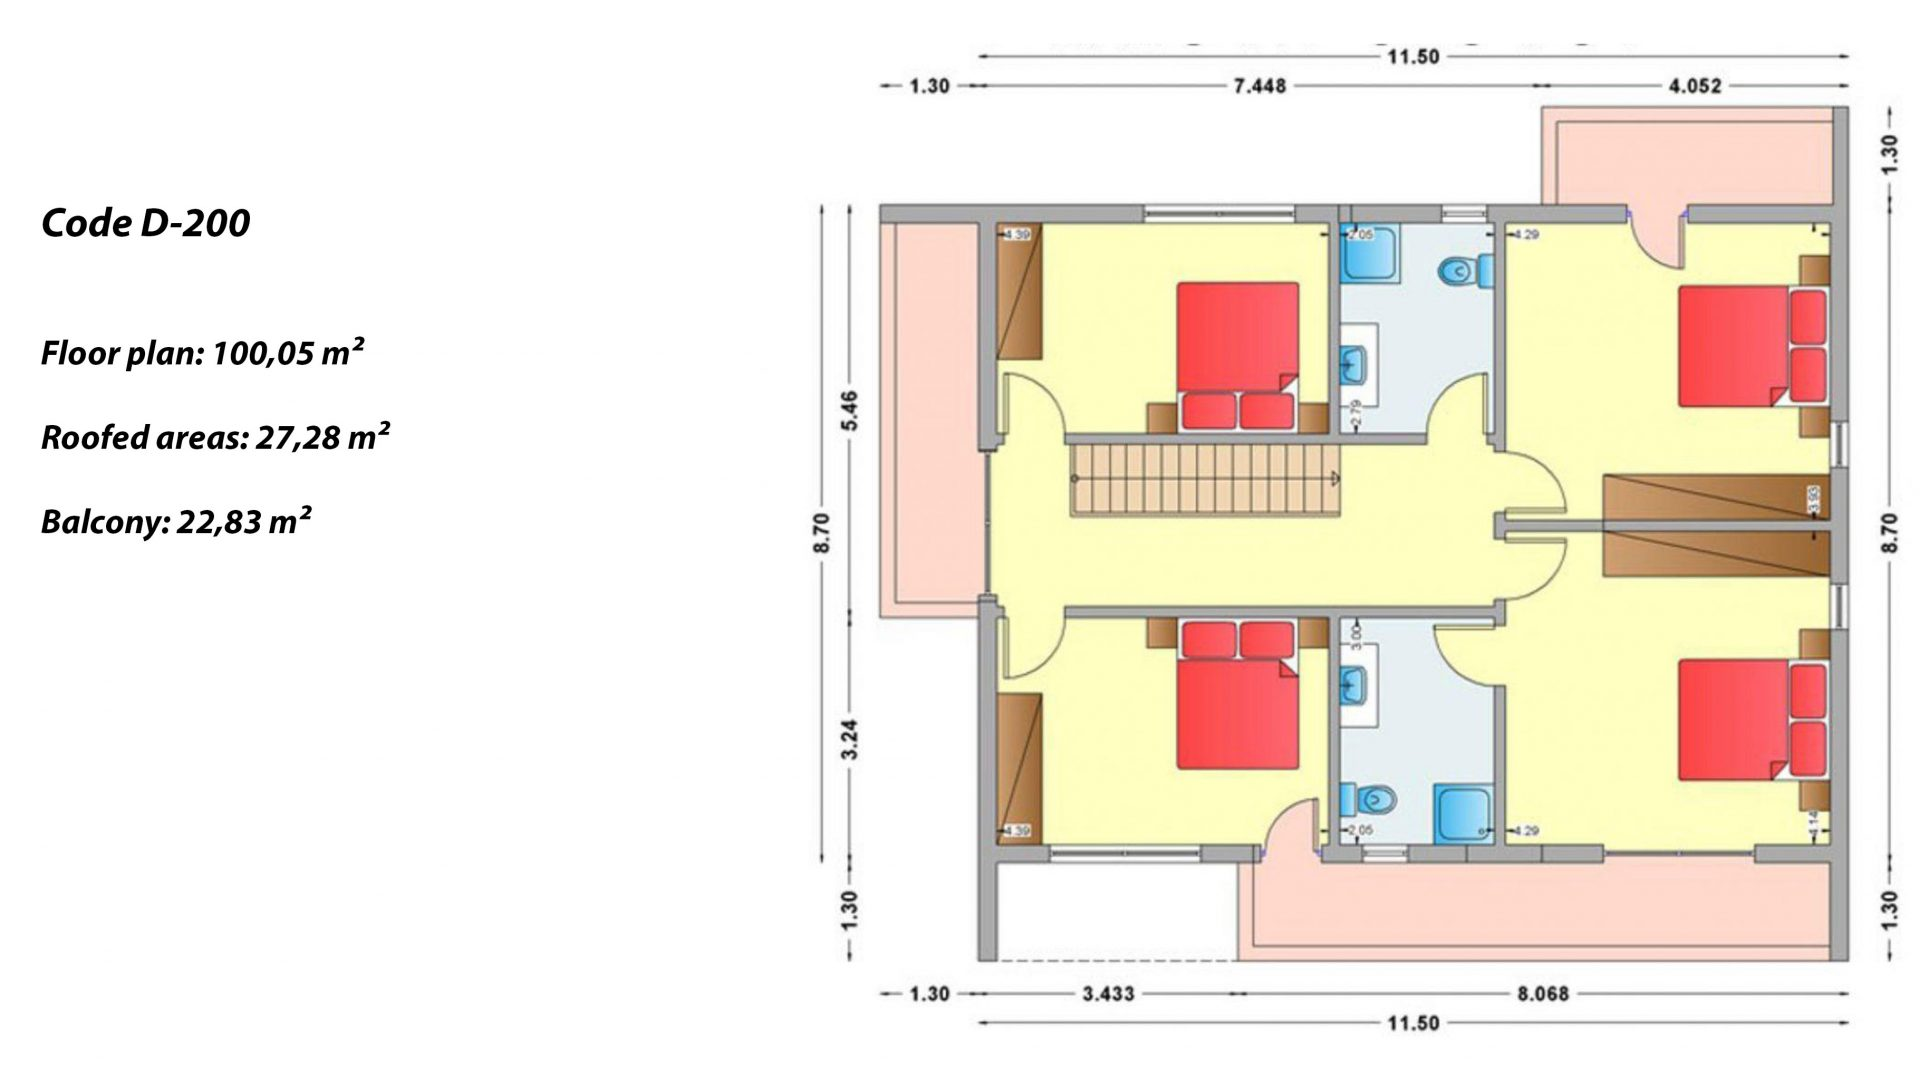 2-story house D-200, total surface of 200,10 m² ,roofed areas 50.11 m²,balconies 22.83 m²